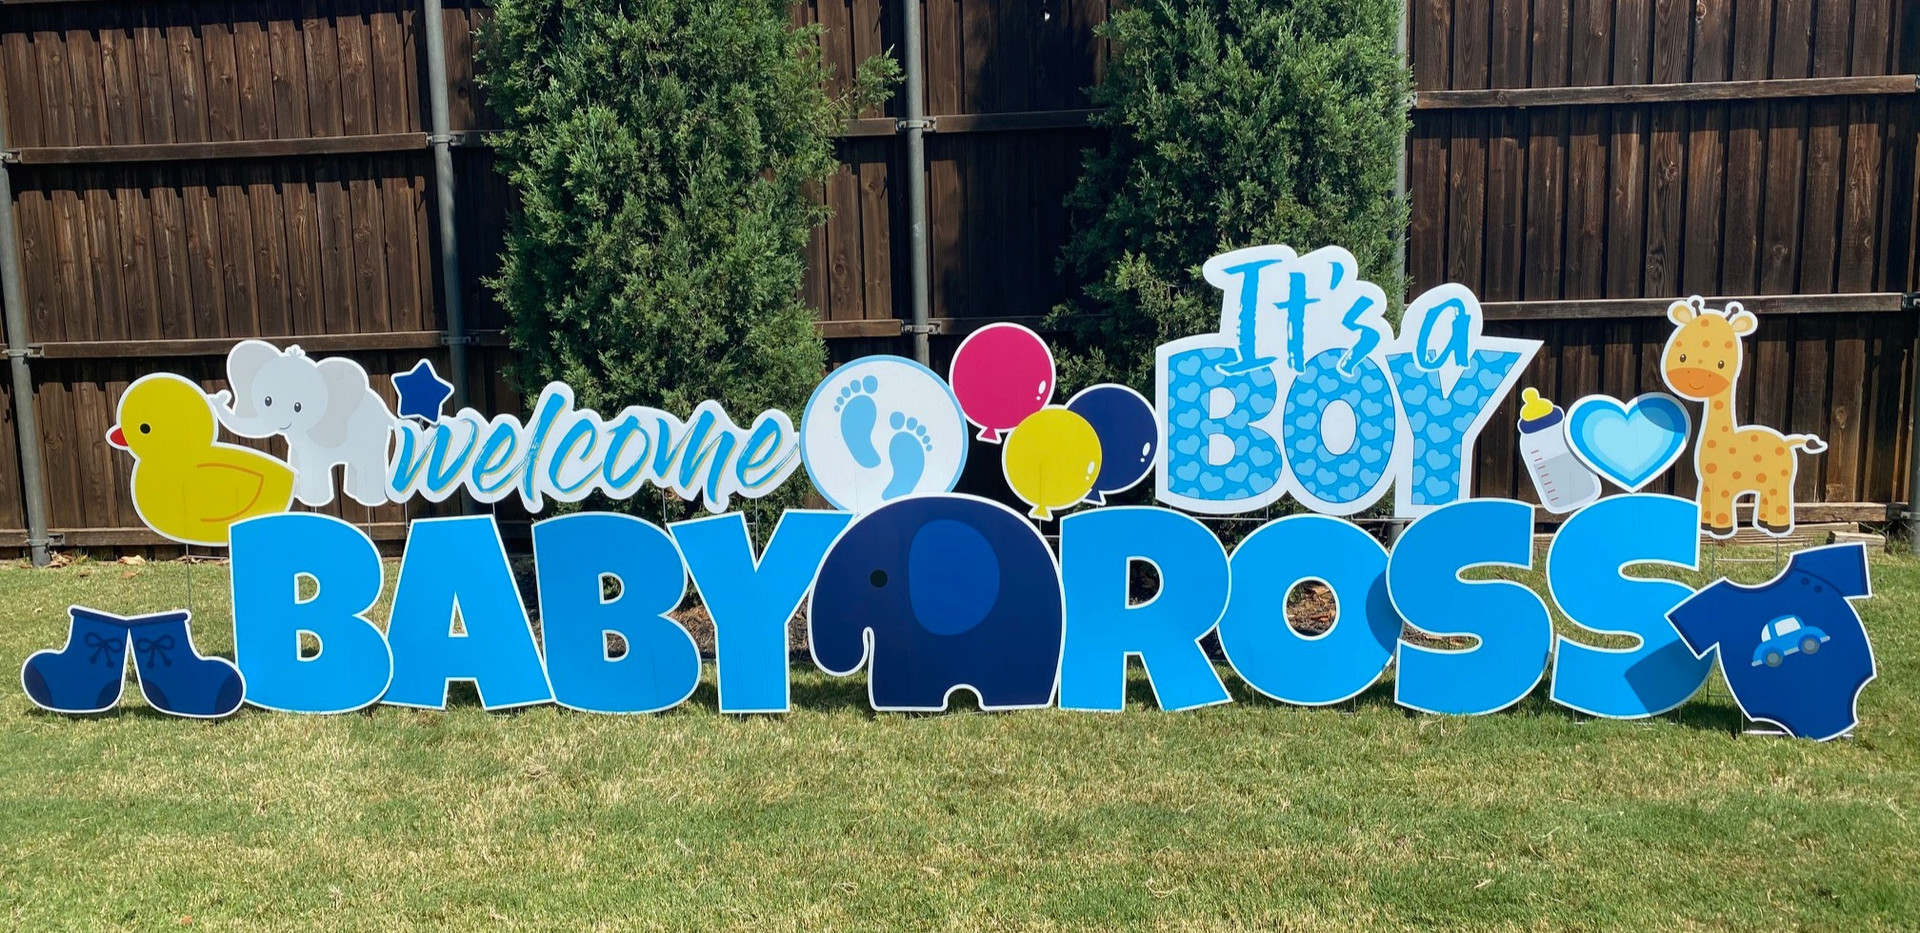 Baby Boy - It's a Boy Sign and Bright Blue